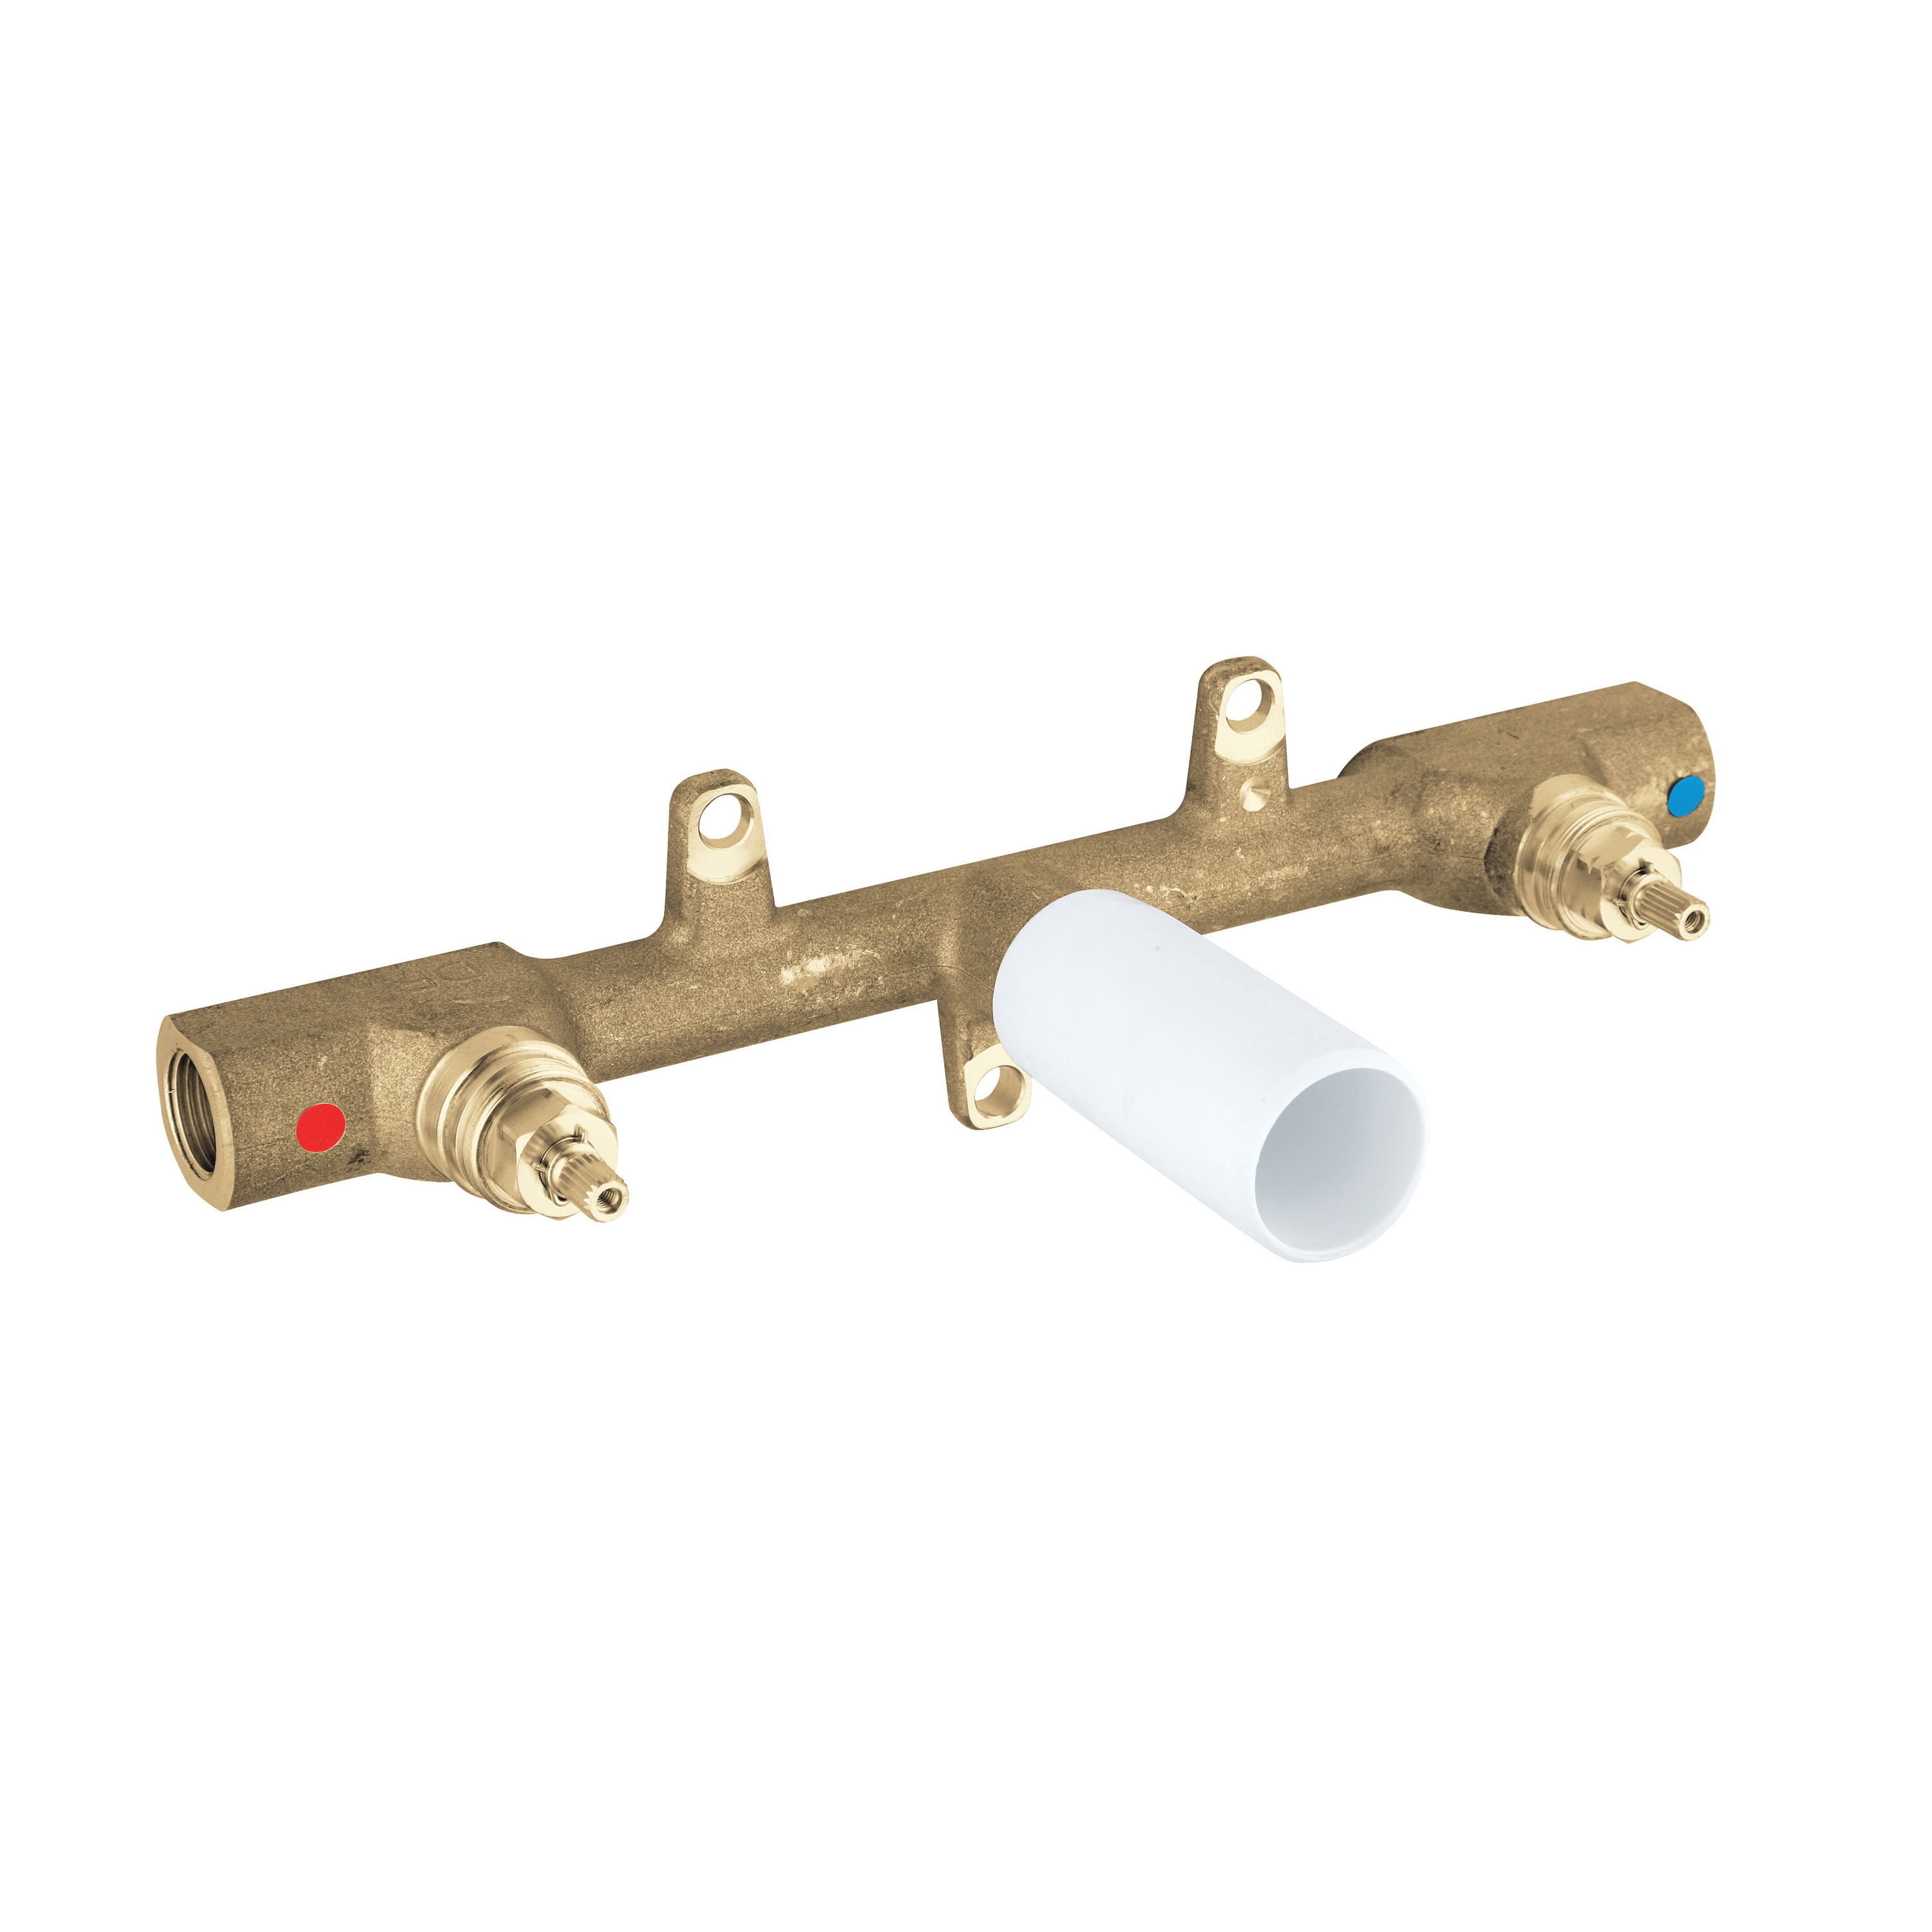 GROHE 33885000 Three-Hole Basin Mixer, 1/2 in, FNPT, Cast Brass Body, Import